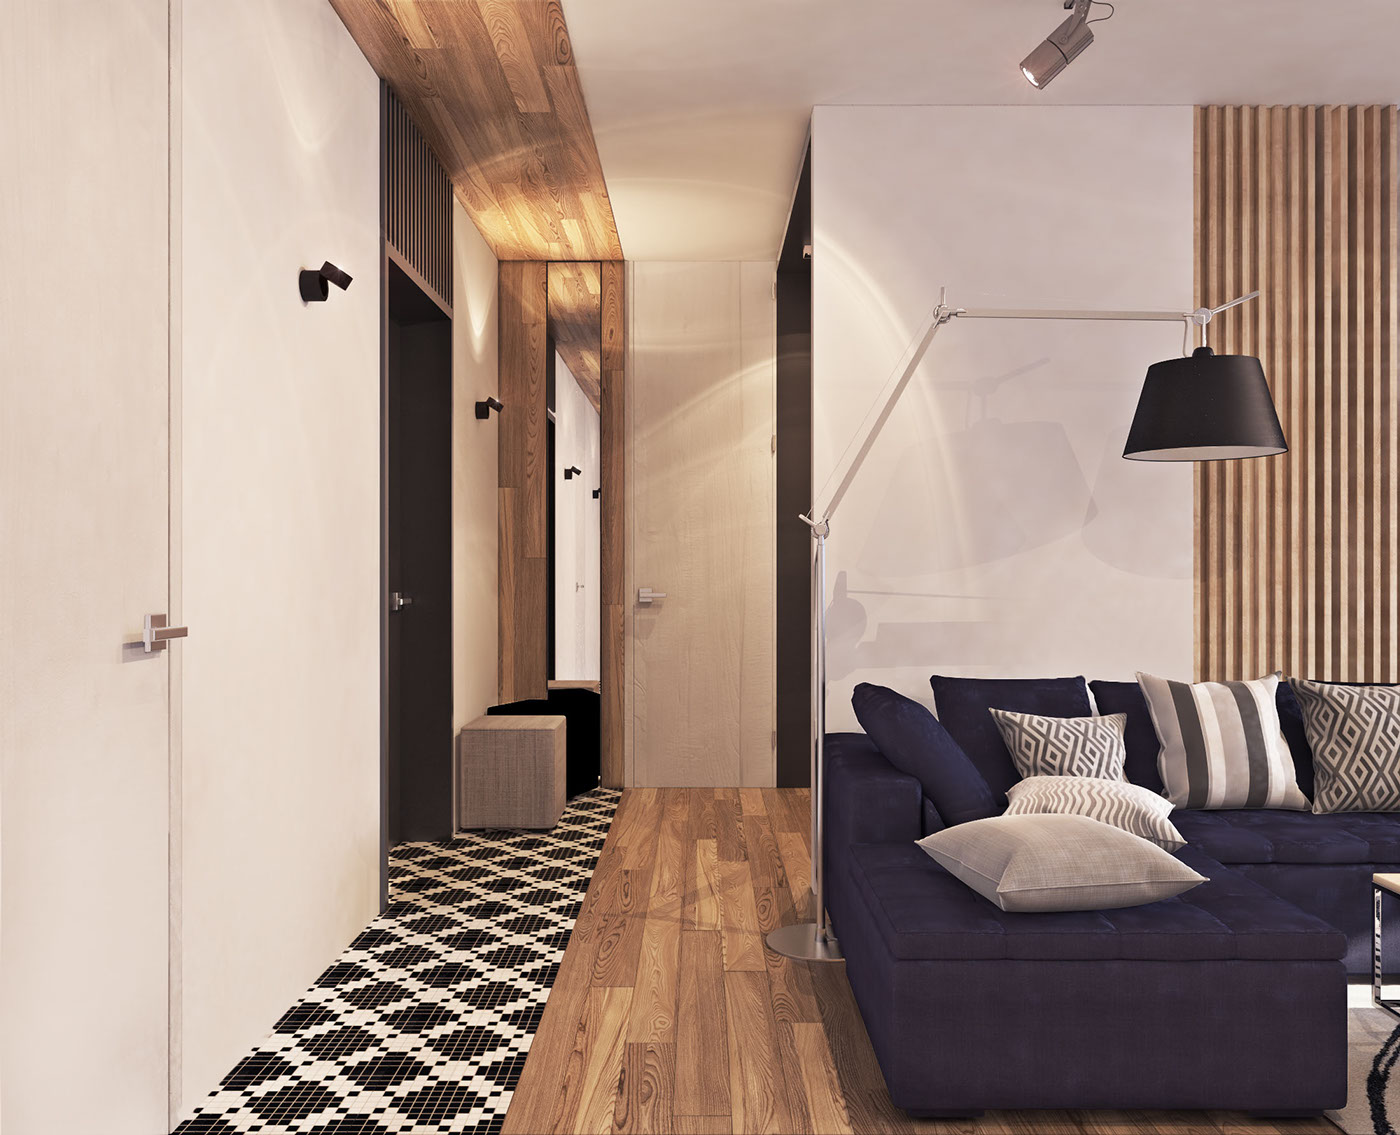 Natural Wood Paneling - A contemporary apartment with lots of open space